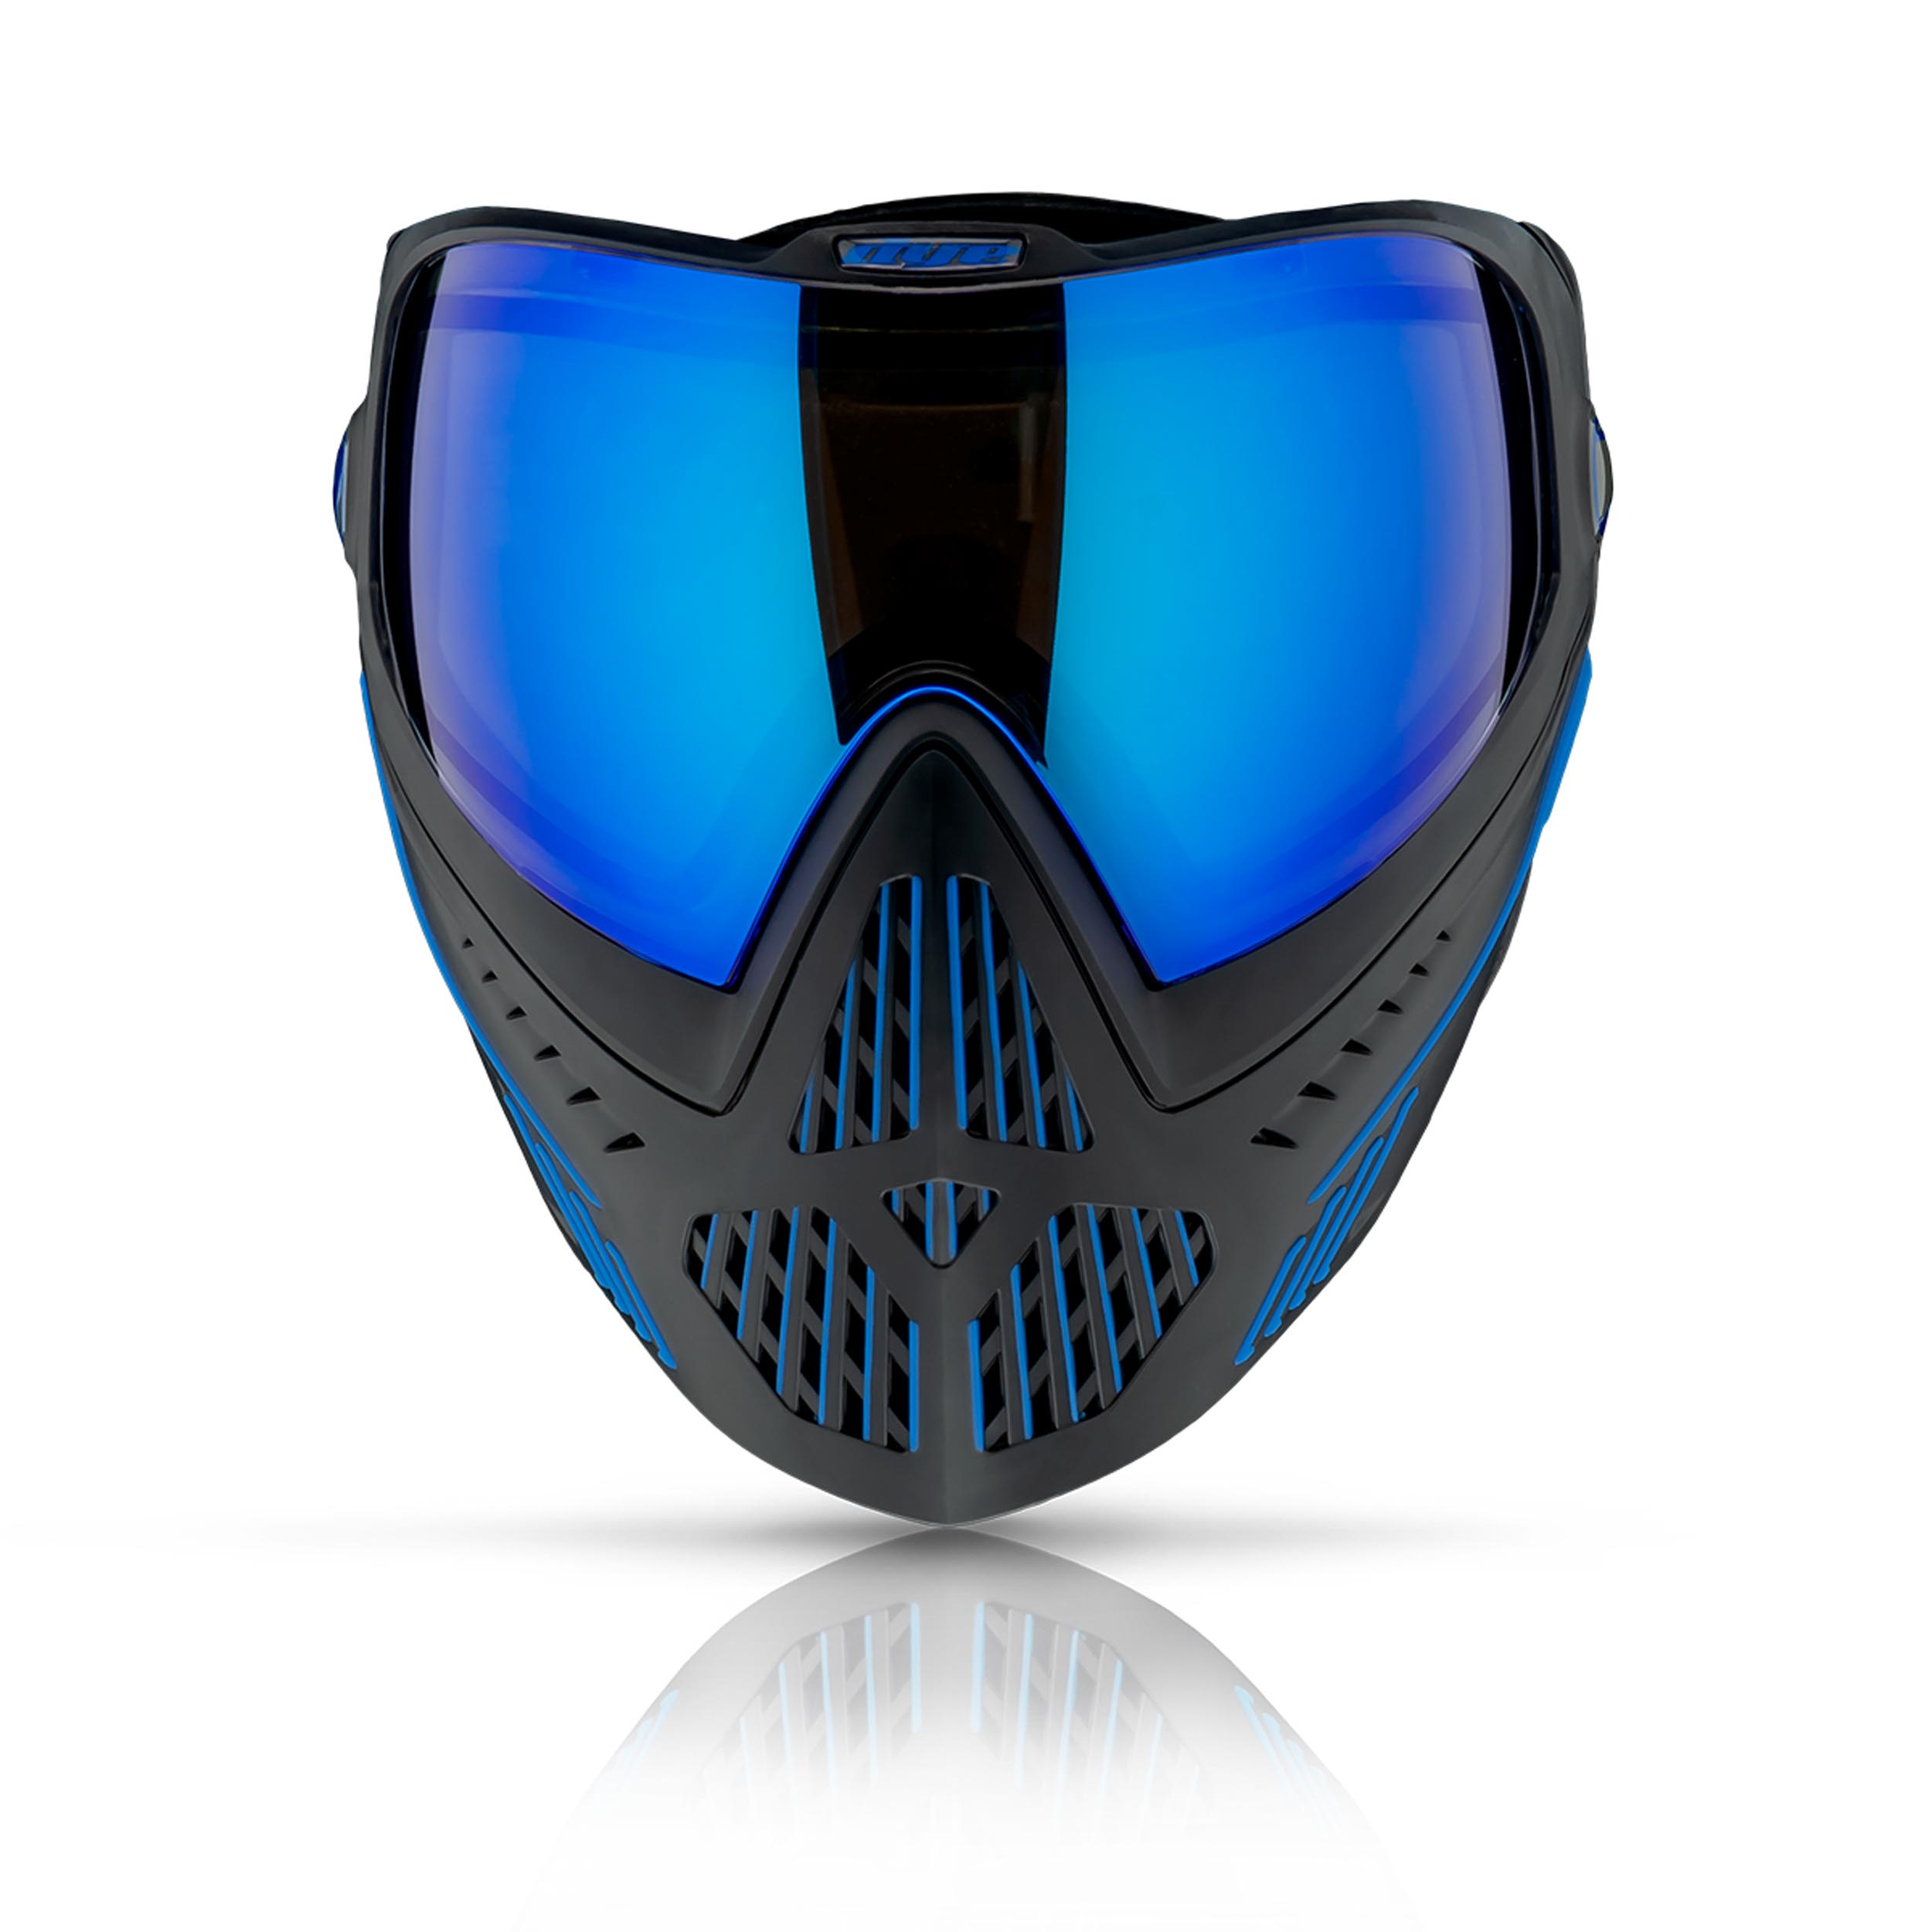 MAS473-2 Dye I5 thermal goggle Onyx Black Gold 2.0 - MAS473